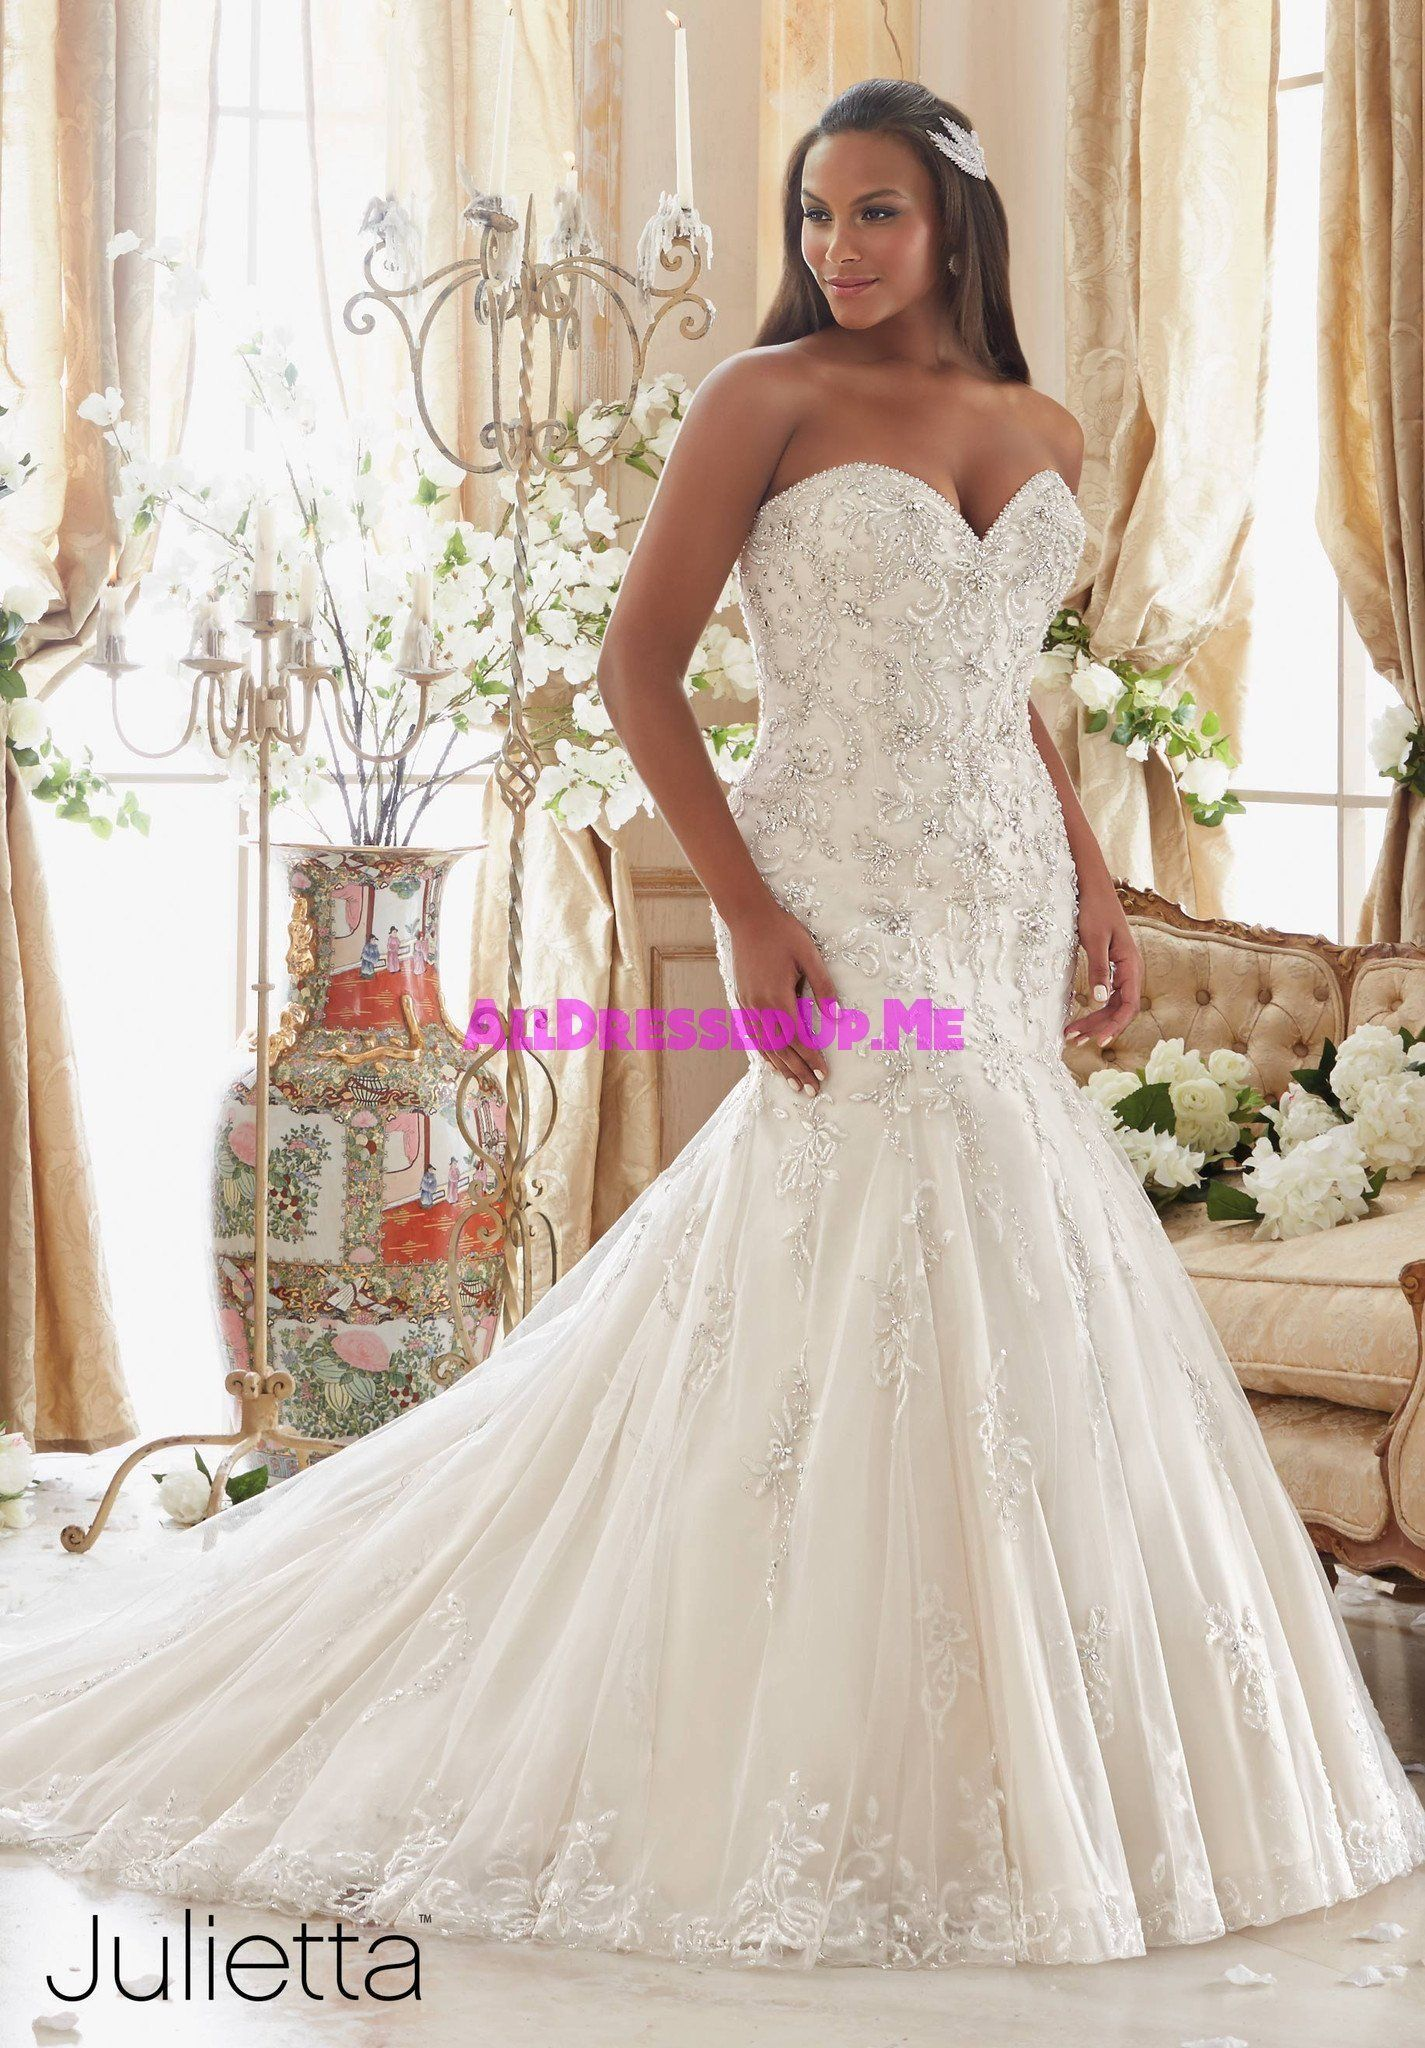 Julietta all dressed up bridal gown bridal gowns and